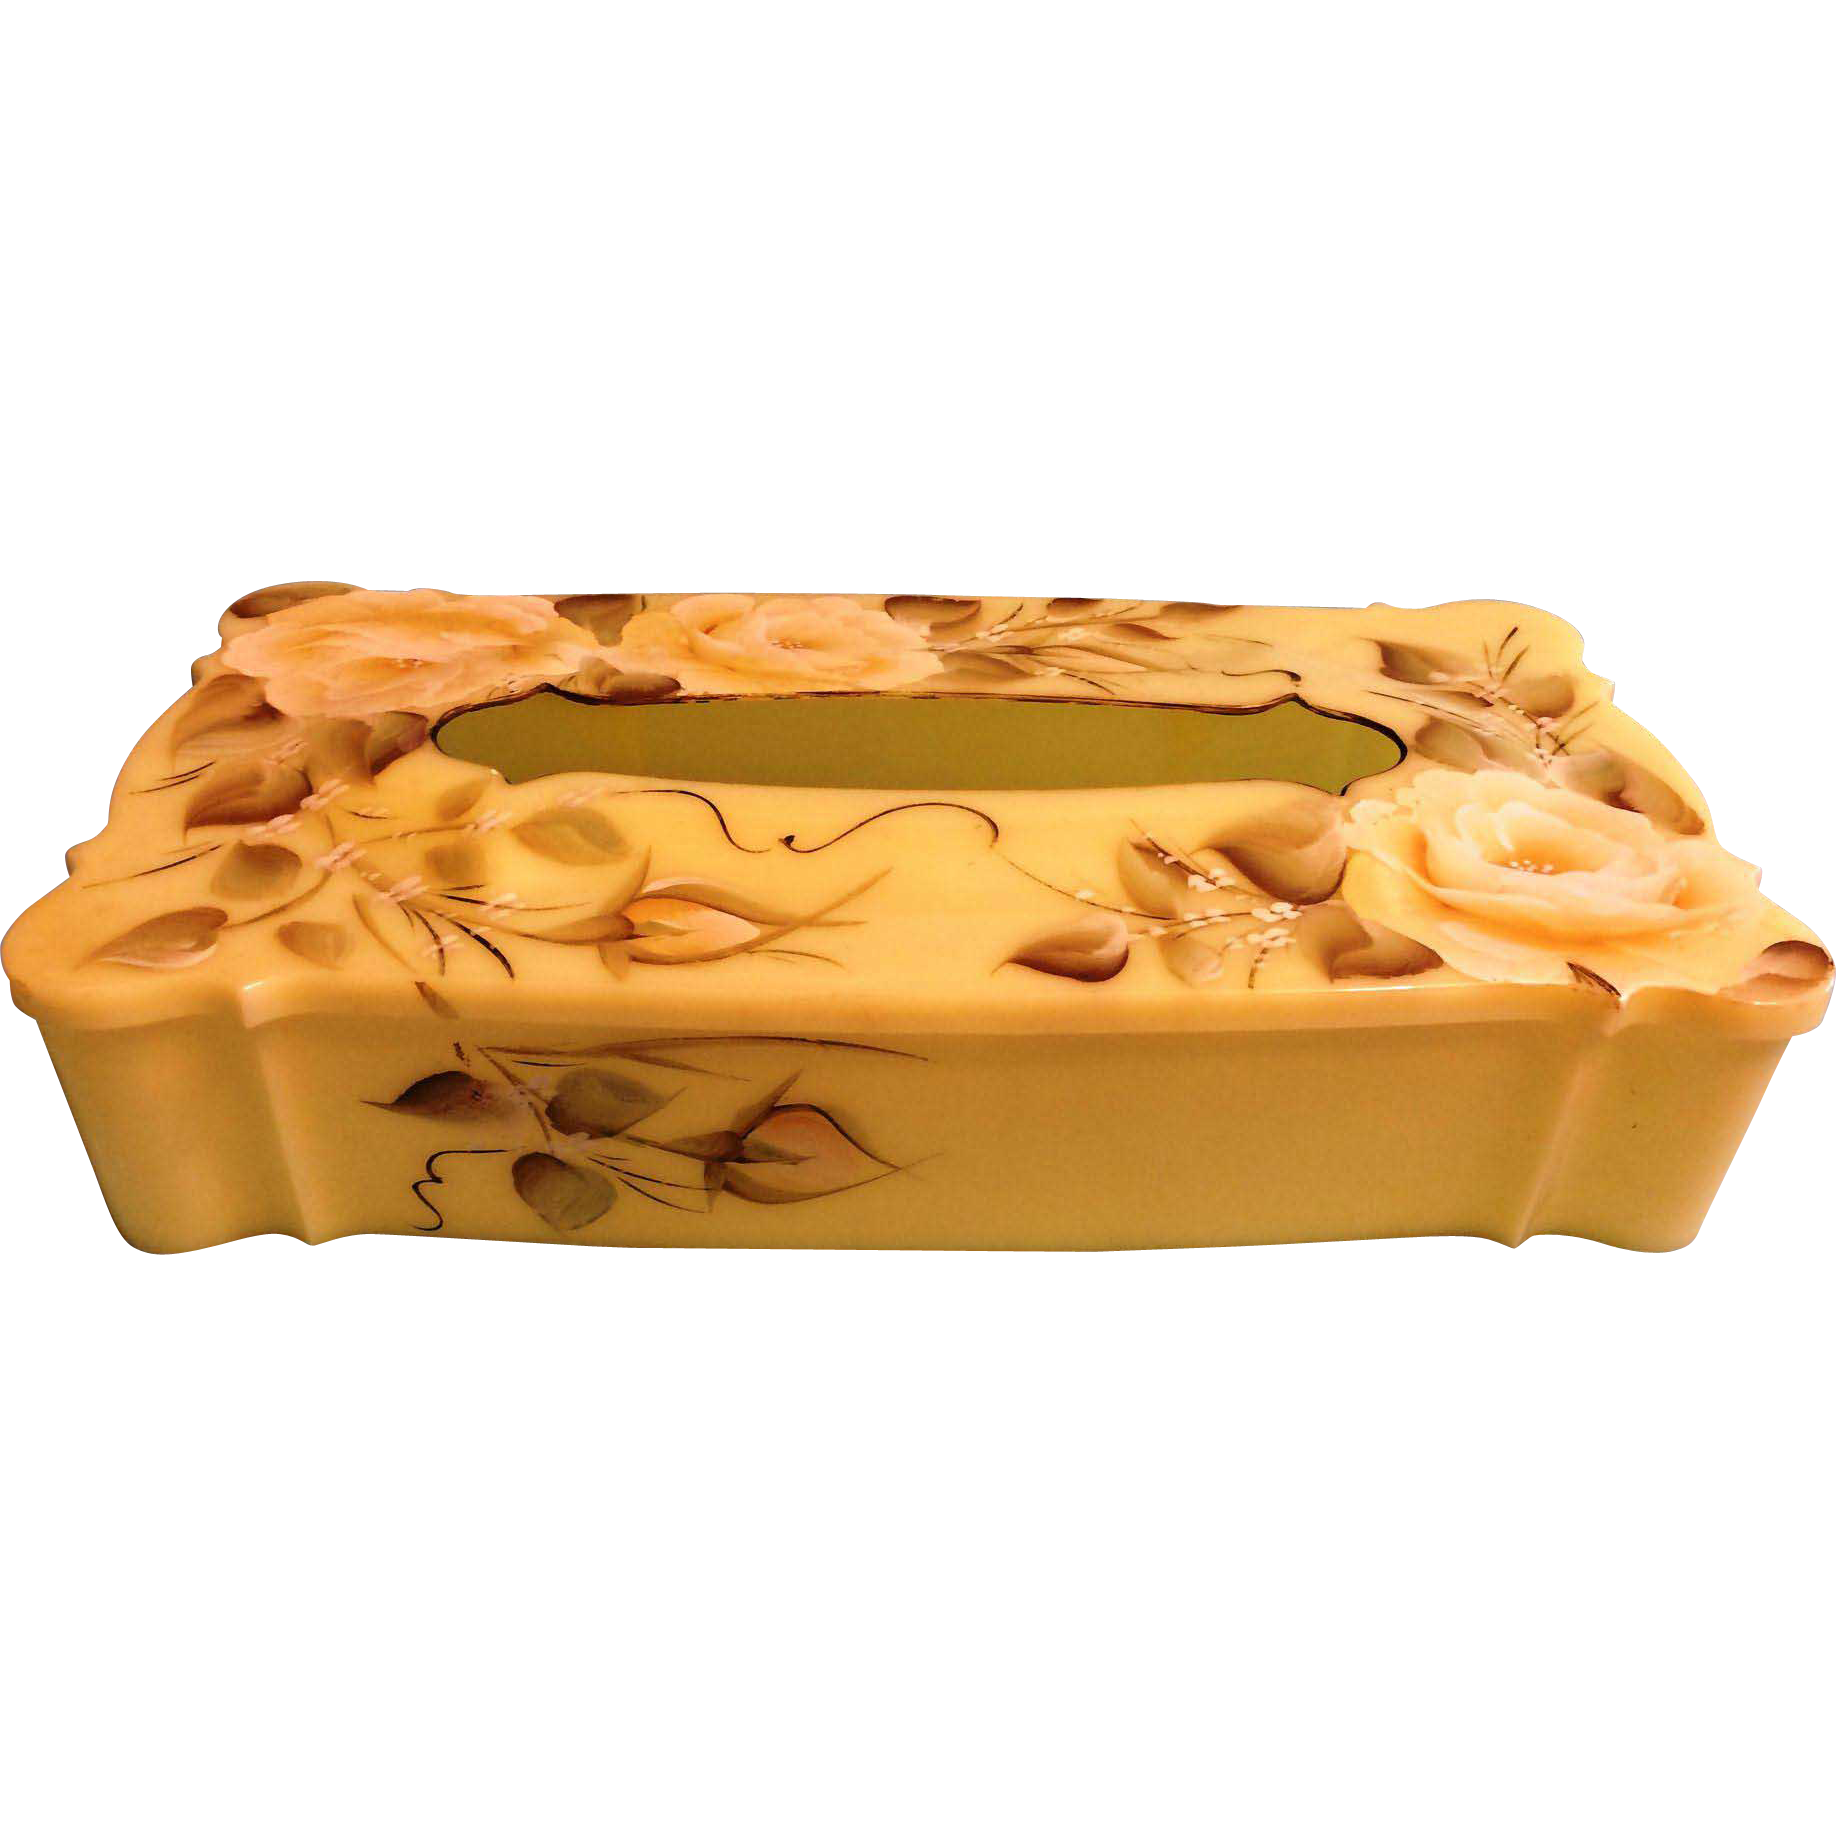 Yellow Schwarz Bros Plastics Kleenex Tissue box  painted Roses and leaves